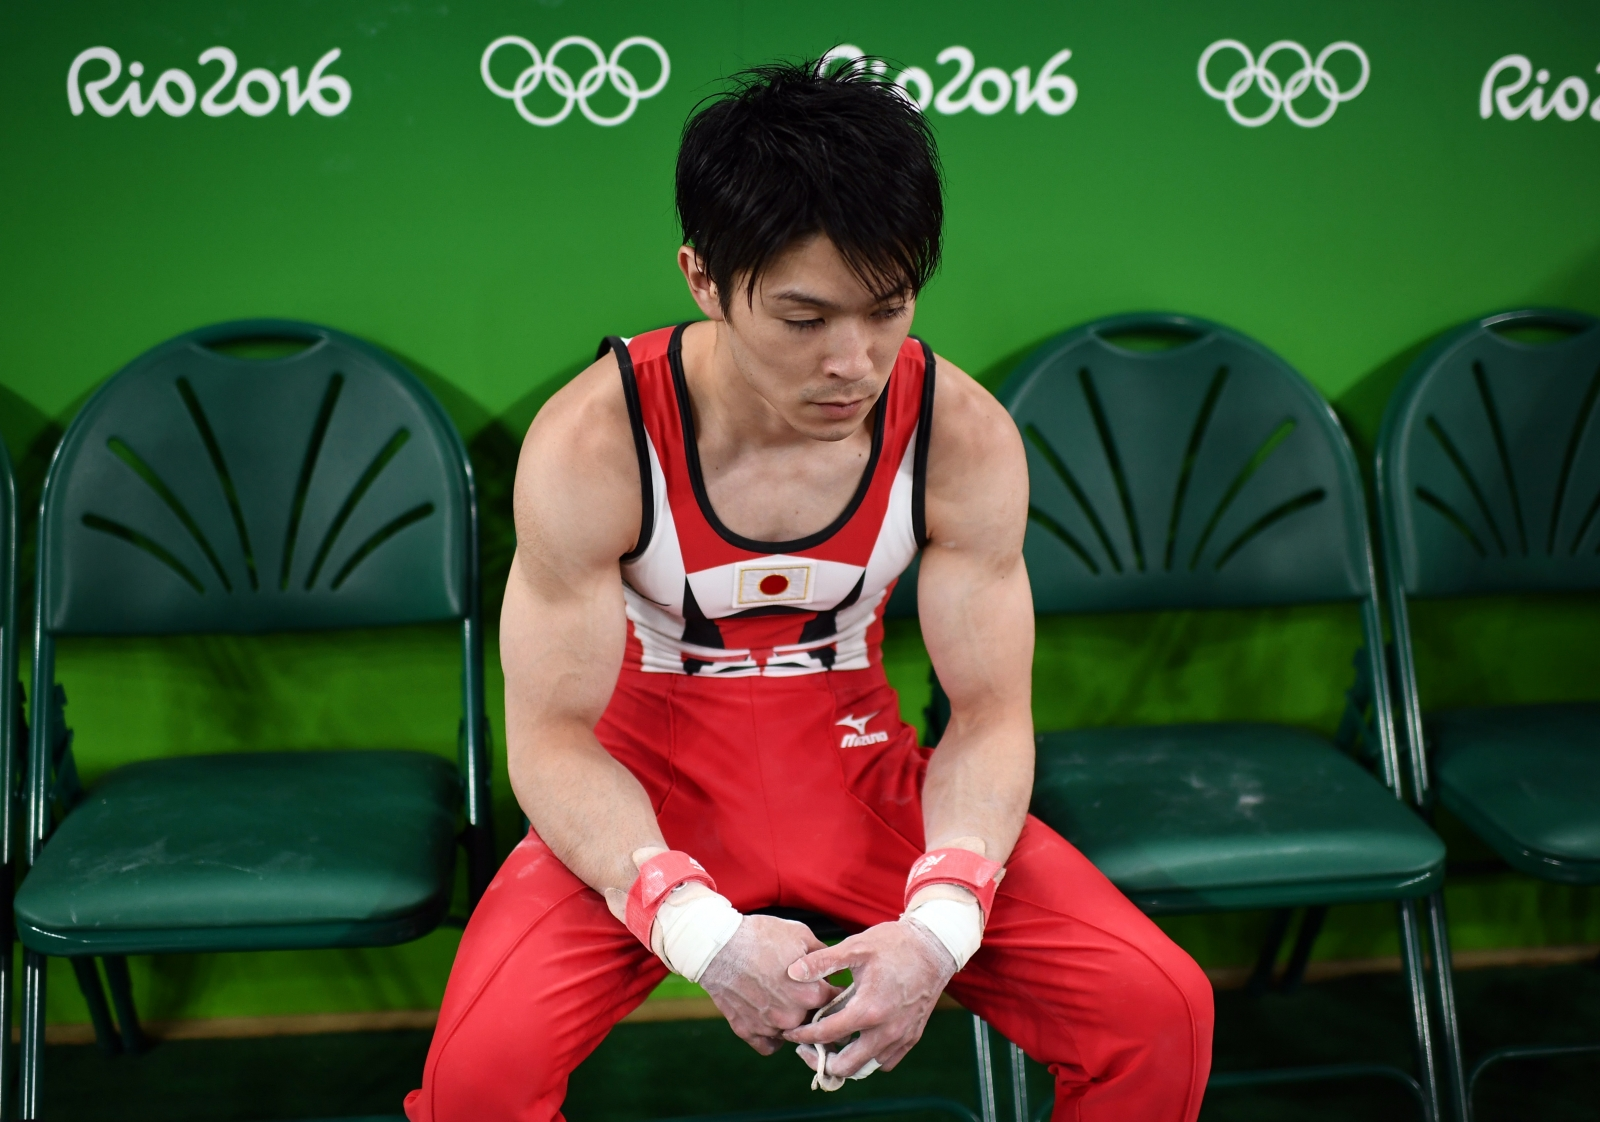 Japanese Men's Gymnastics Olympic champion Kohei Uchimura